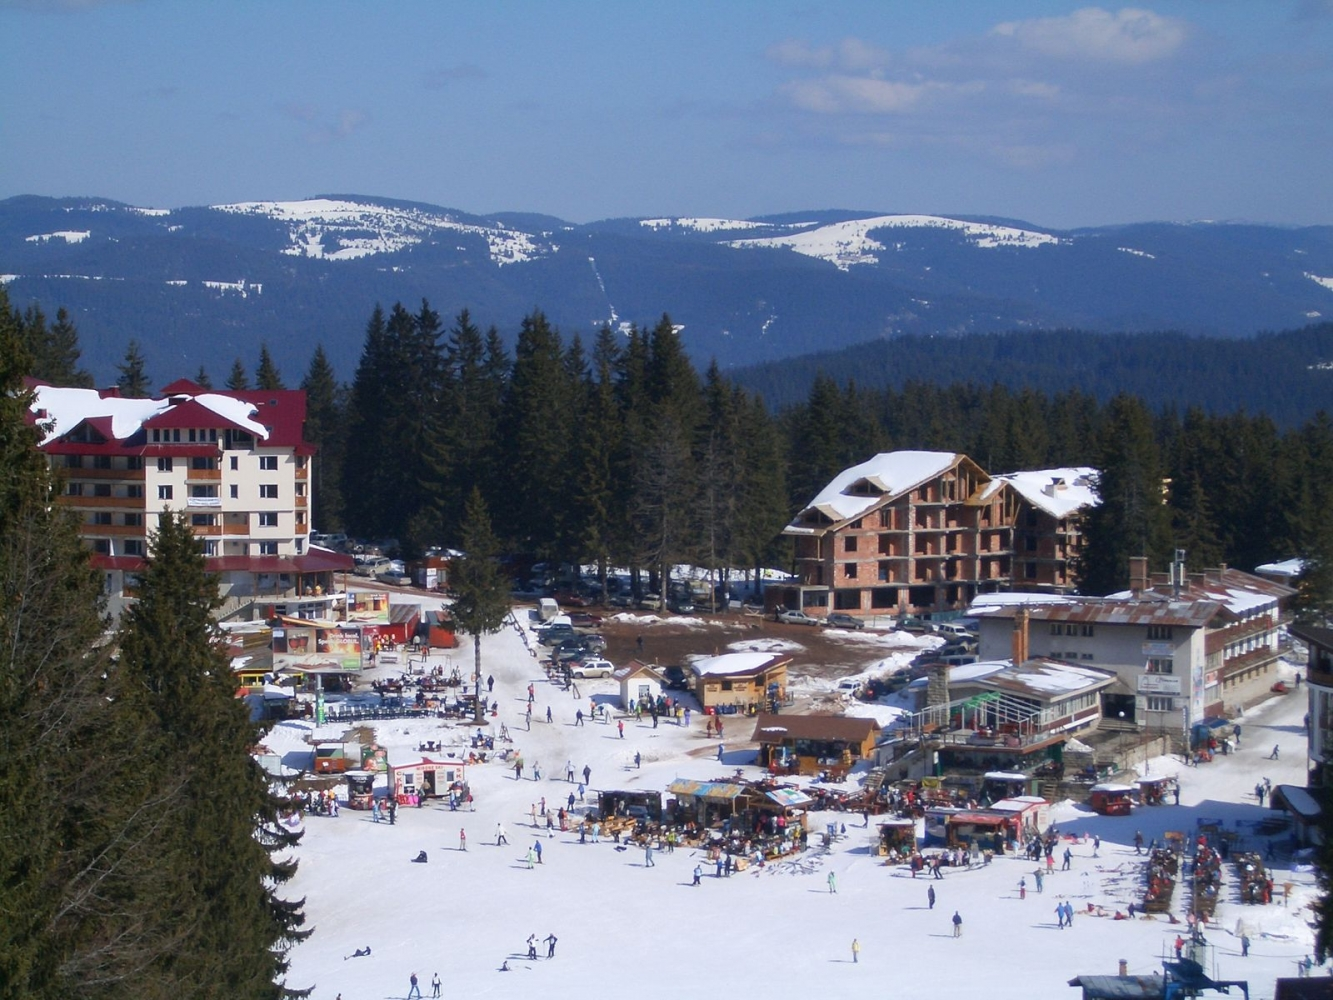 Bulgaria is officially opening the ski season today